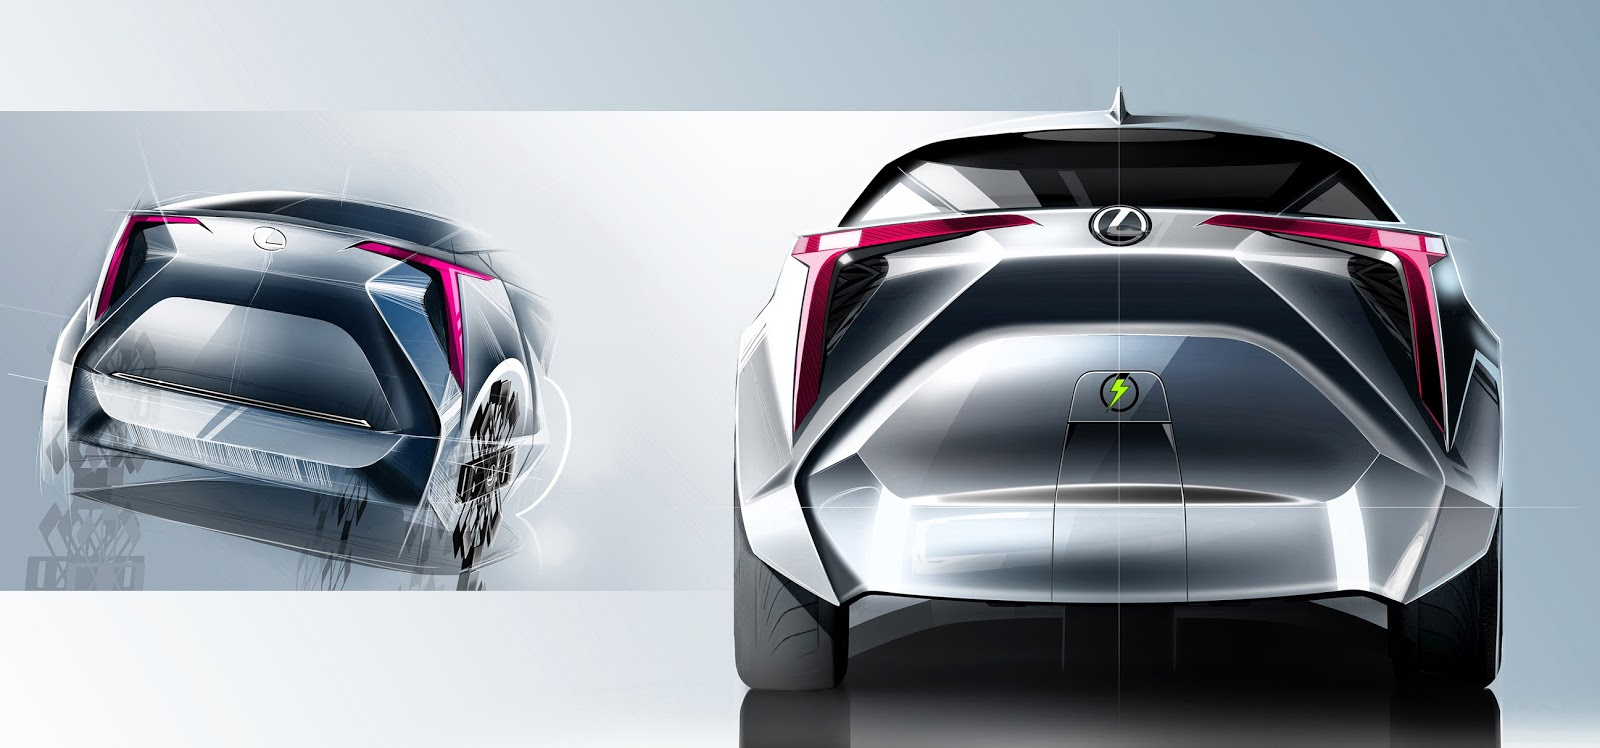 Lexus Three Wheeled Revolution Concept By Sanjay Urikoth Motivezine Car Sketch Initial Exploration